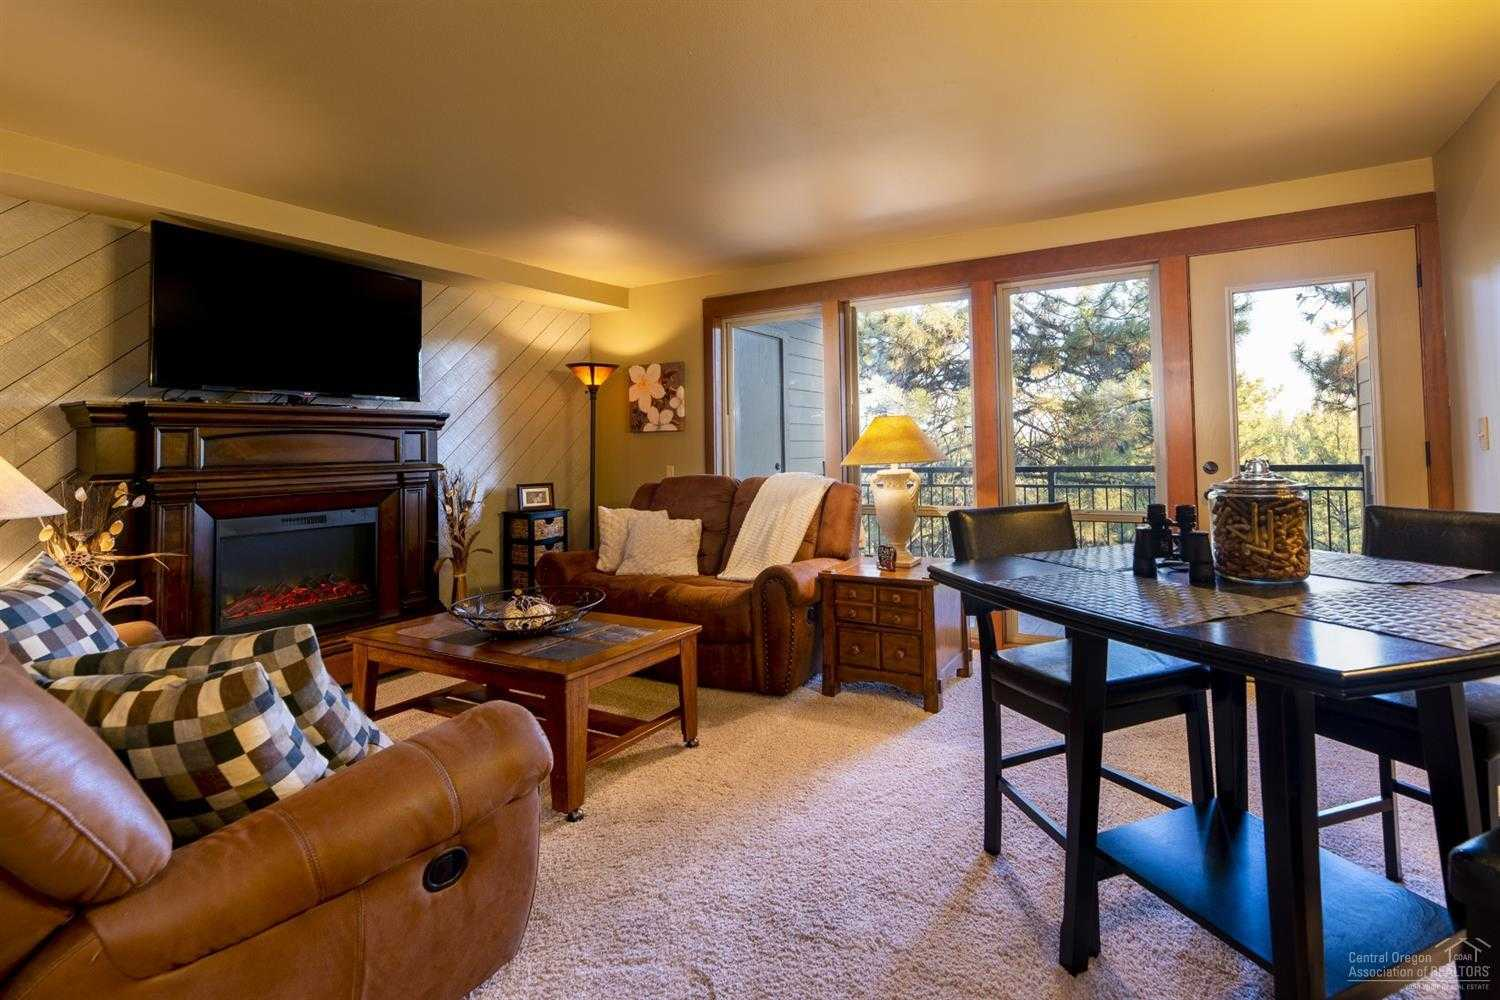 $155,000 - 1Br/1Ba -  for Sale in Bend